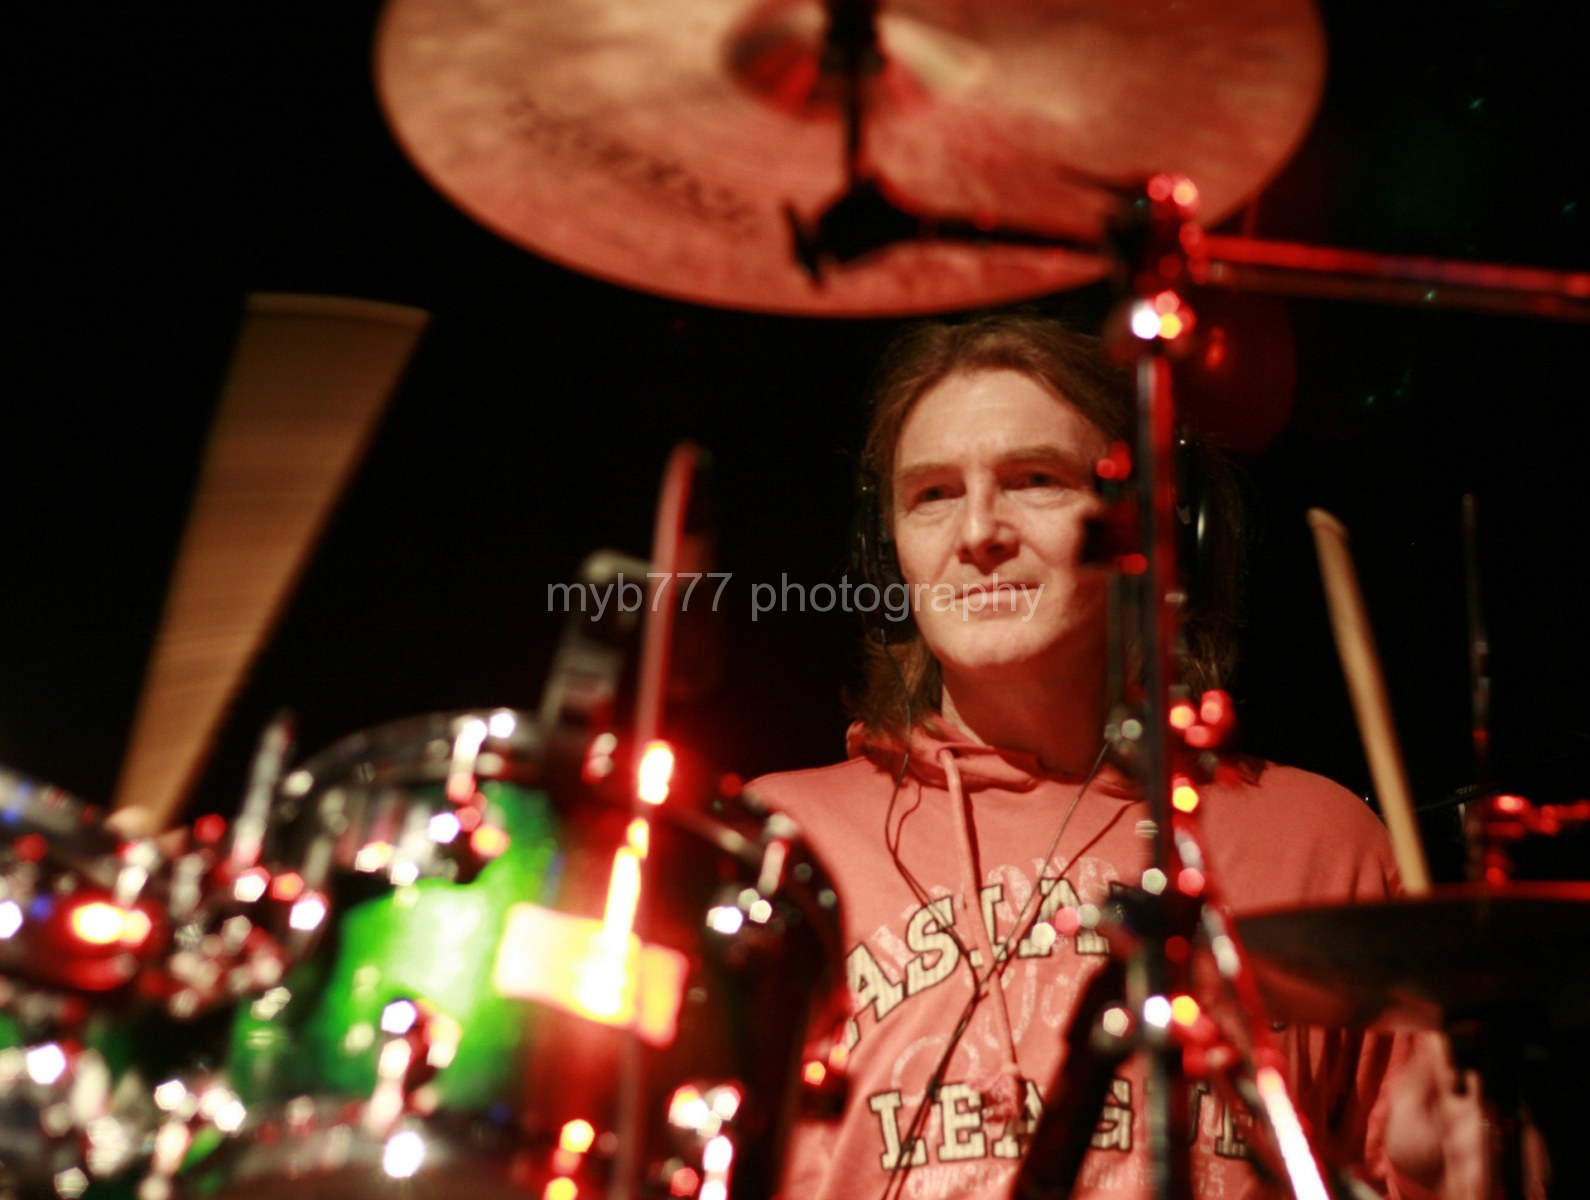 Drummer-Photography-by-myb777-17